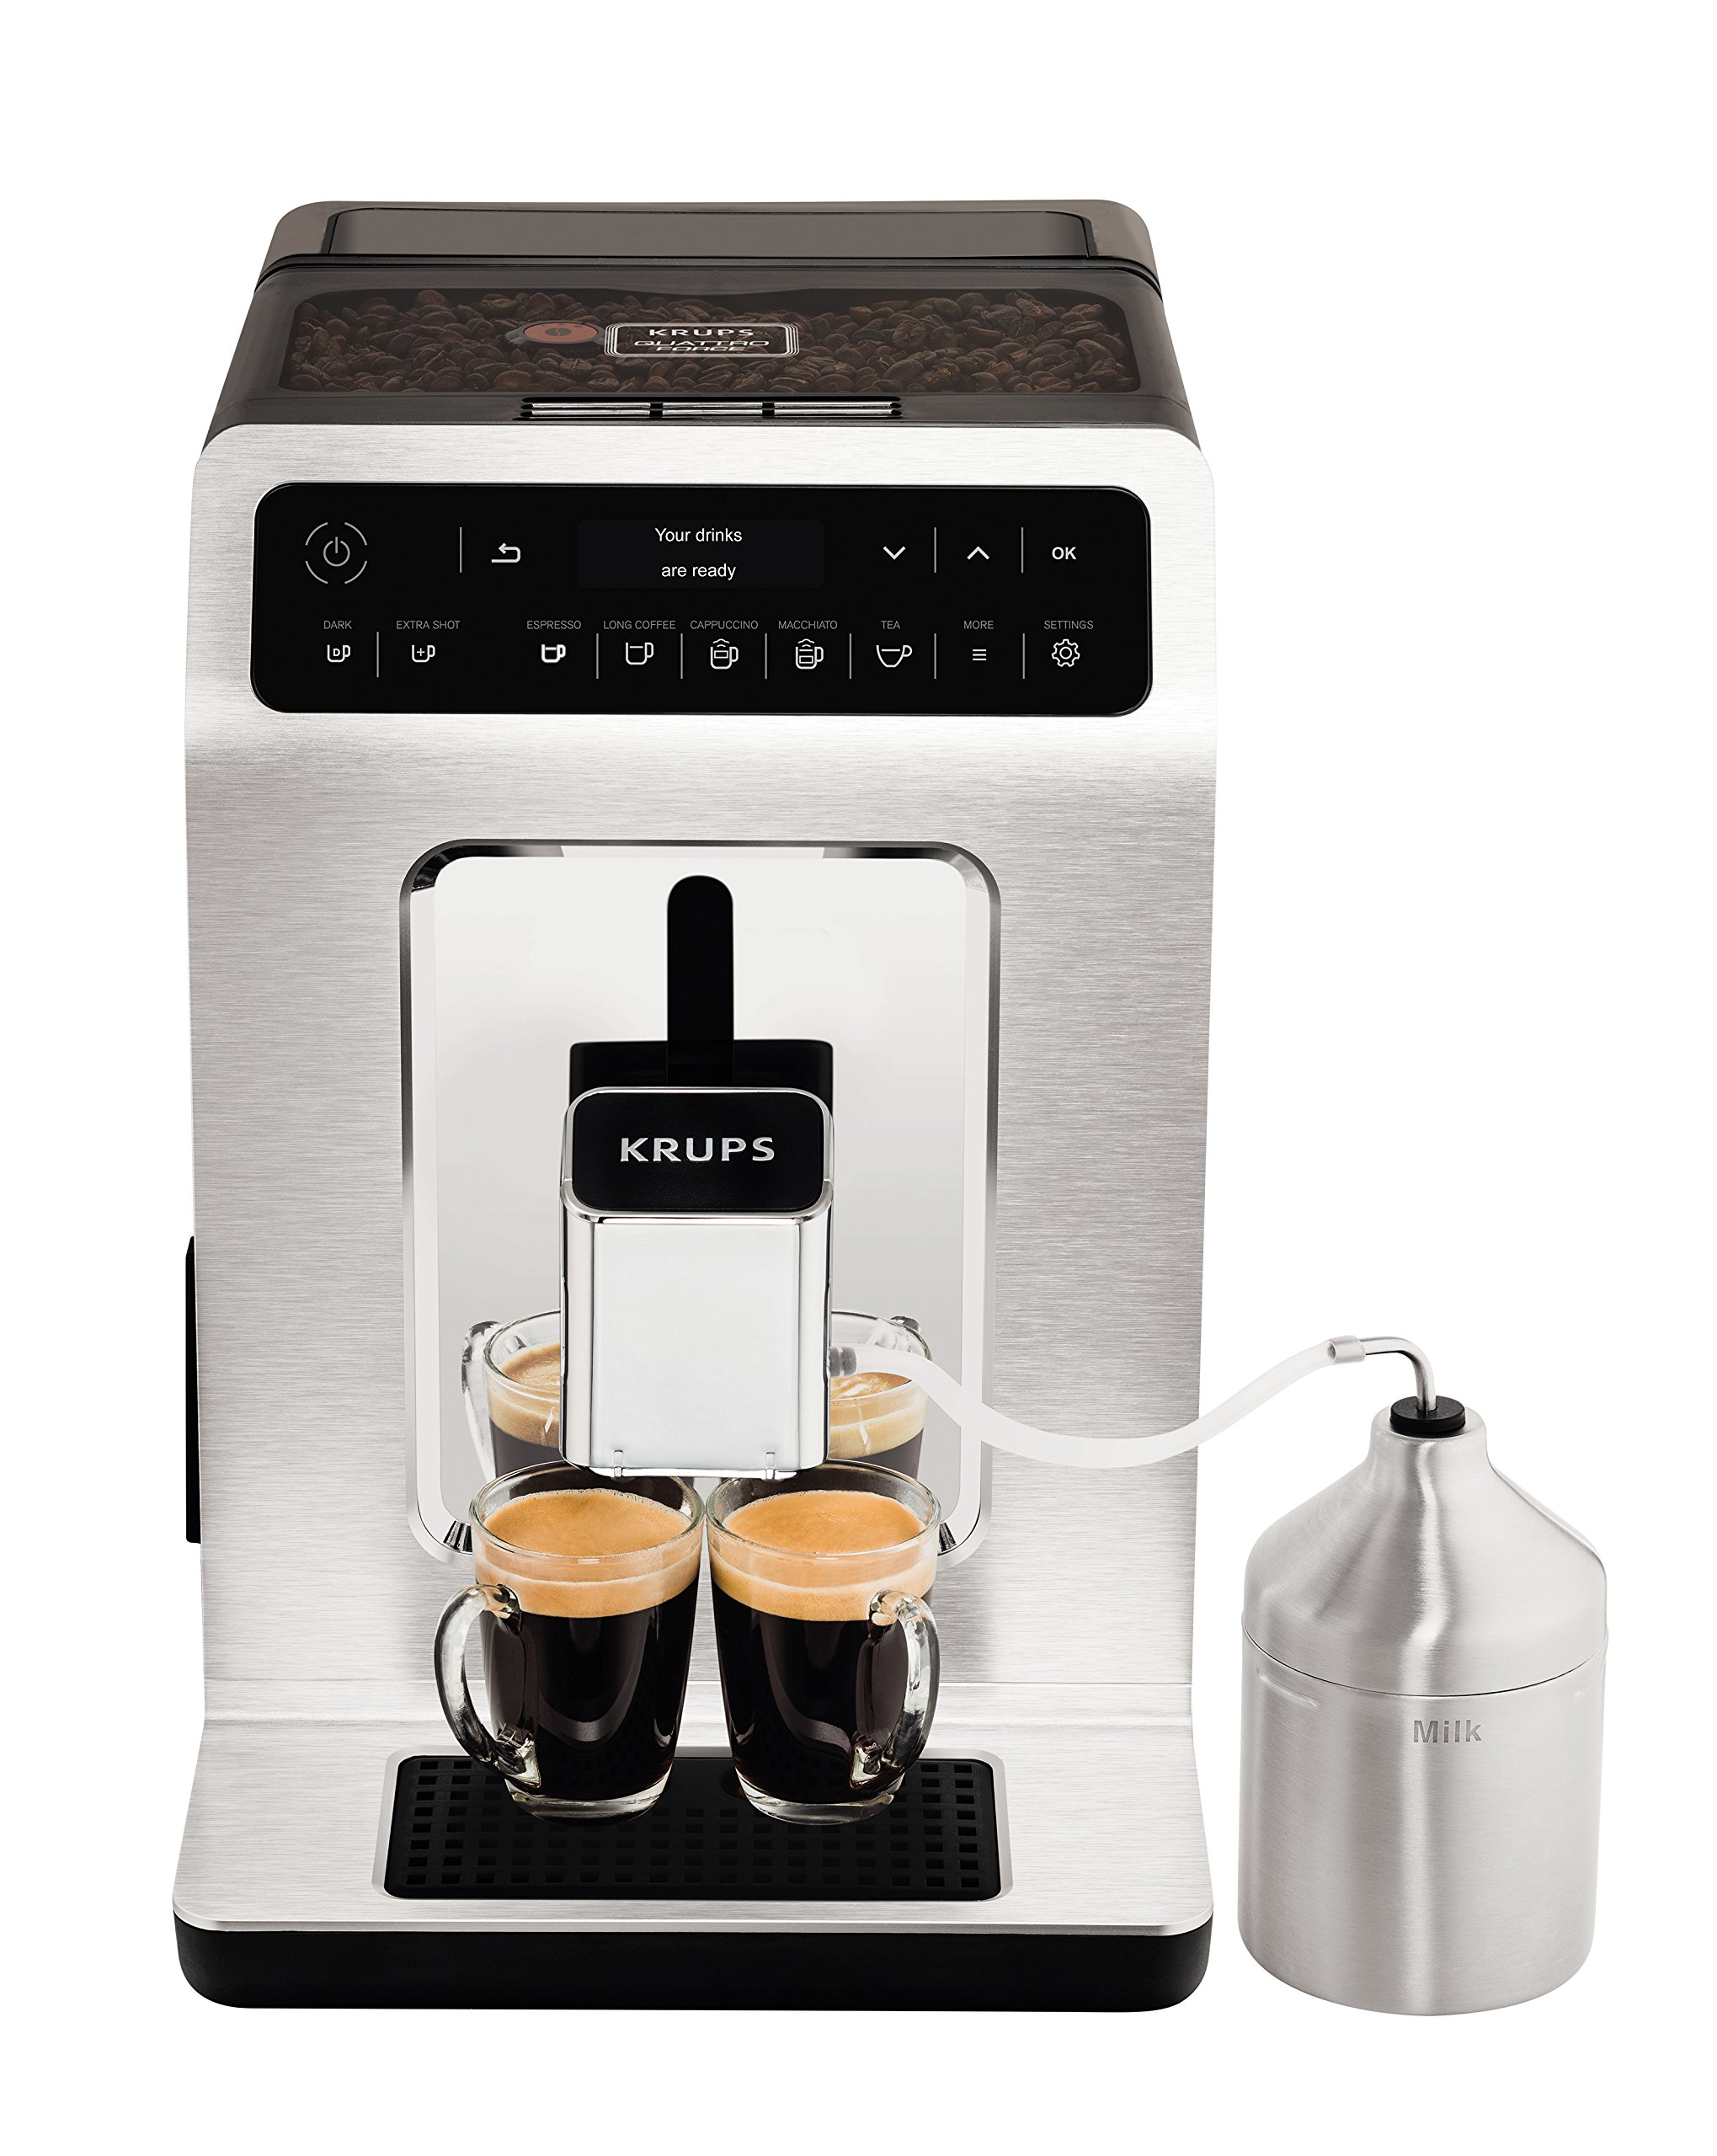 Krups-Kaffeevollautomat-Evidence-One-Touch-Cappuccino-OLED-Bedienfeld-mit-Touchcreen-21-L